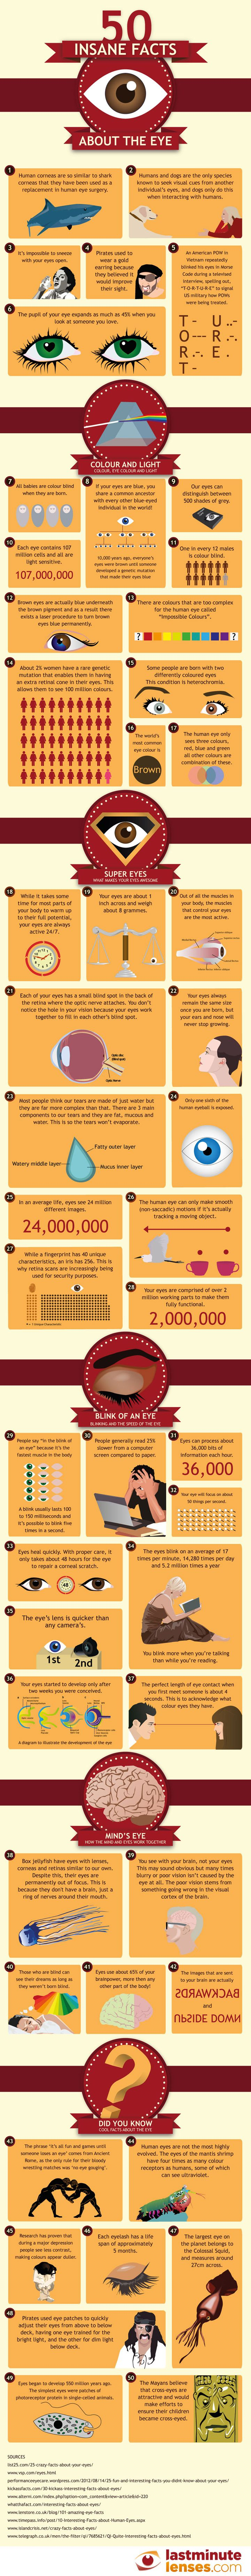 50 insane facts about the eye -From how much your eye weighs to what makes is in a tear drop, this insightful Infographic has you covered with everything you ever wanted to know about the human eye. -Posted Mar 05, 2014